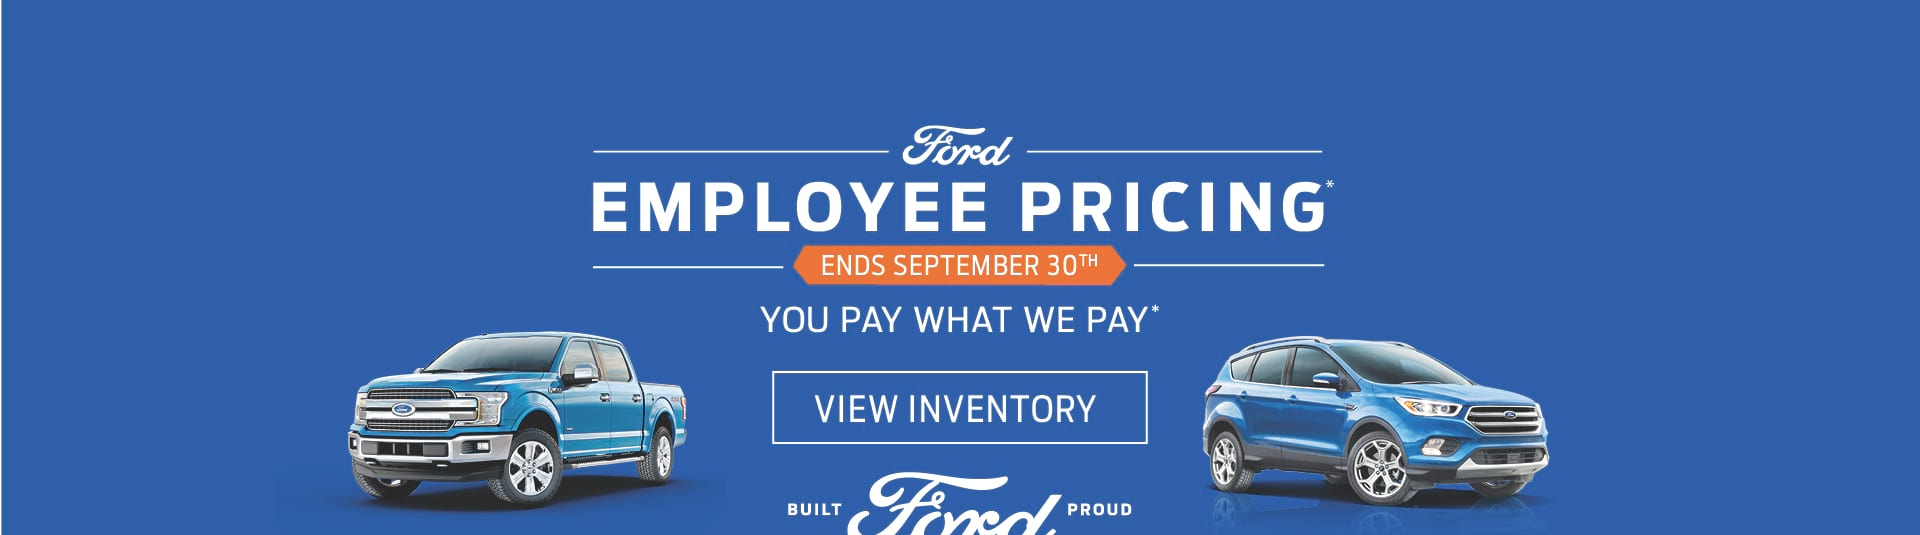 DowntownFord-Hero-Employee-Pricing-September-2019.jpg